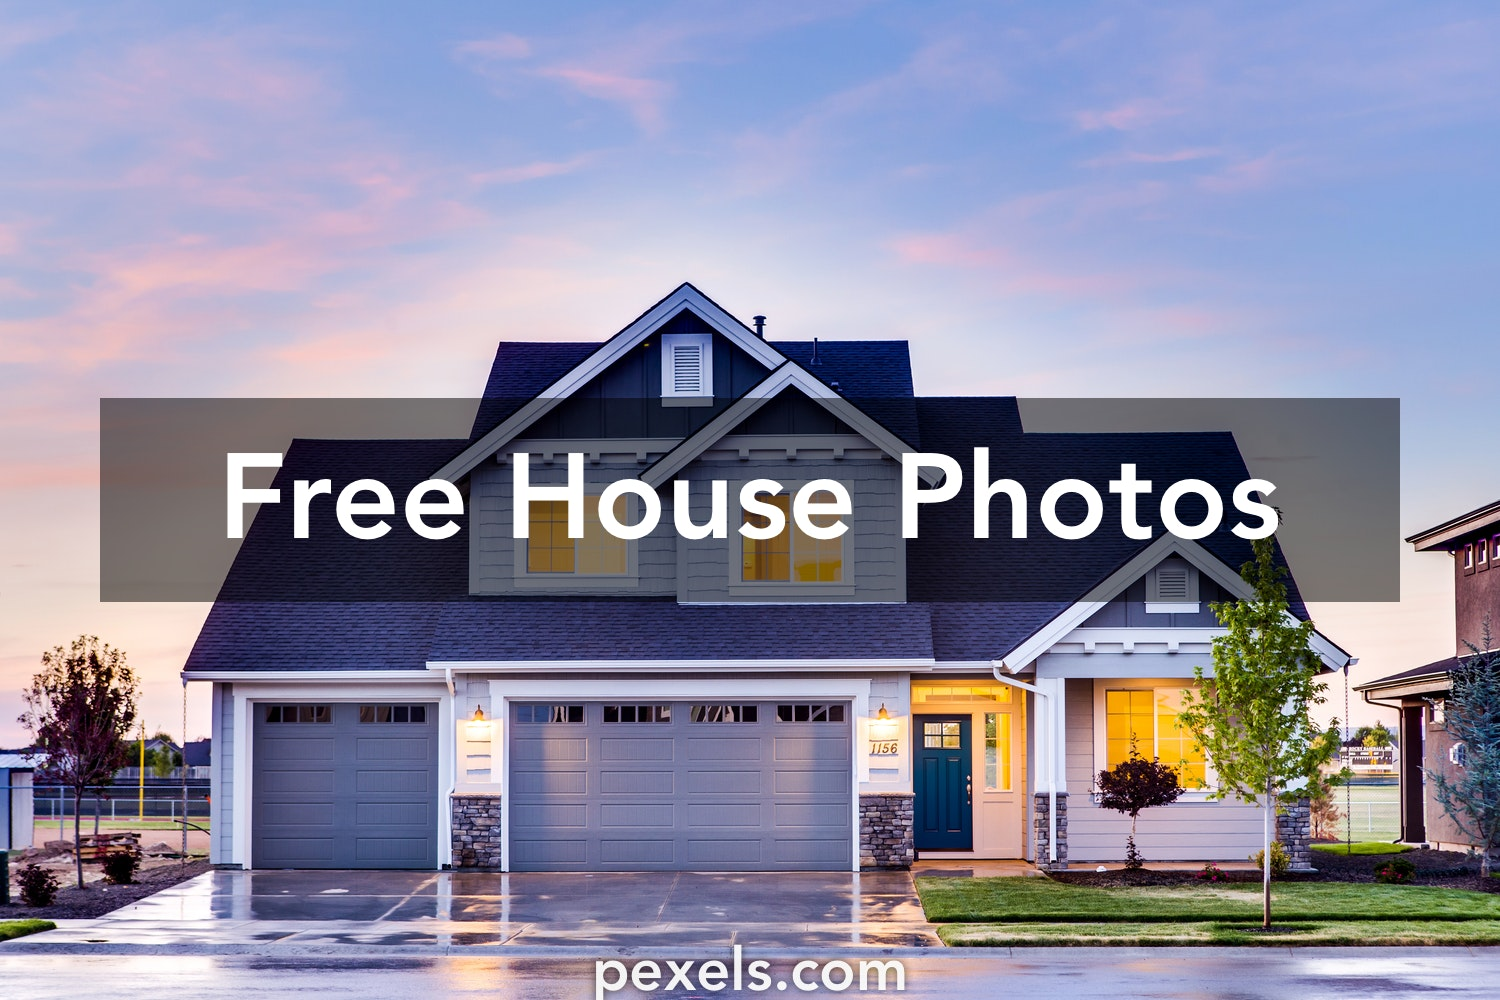 House photos pexels free stock photos for Ome images